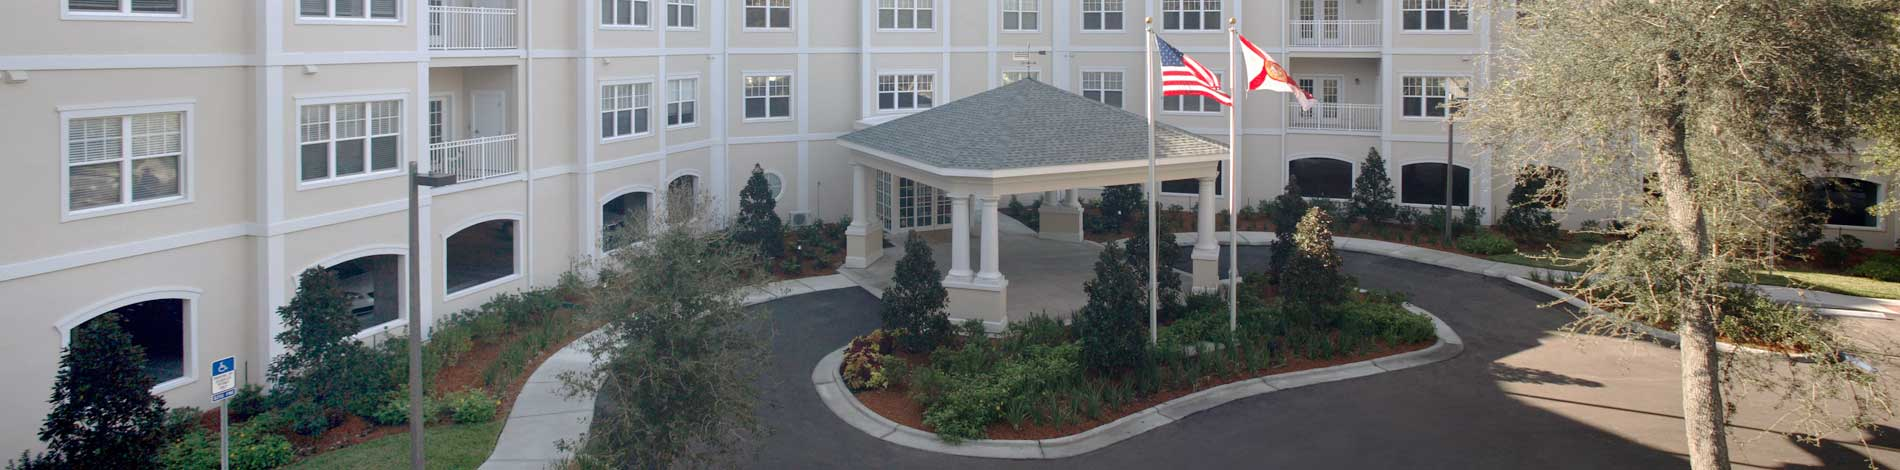 About Osprey Village in Amelia Island